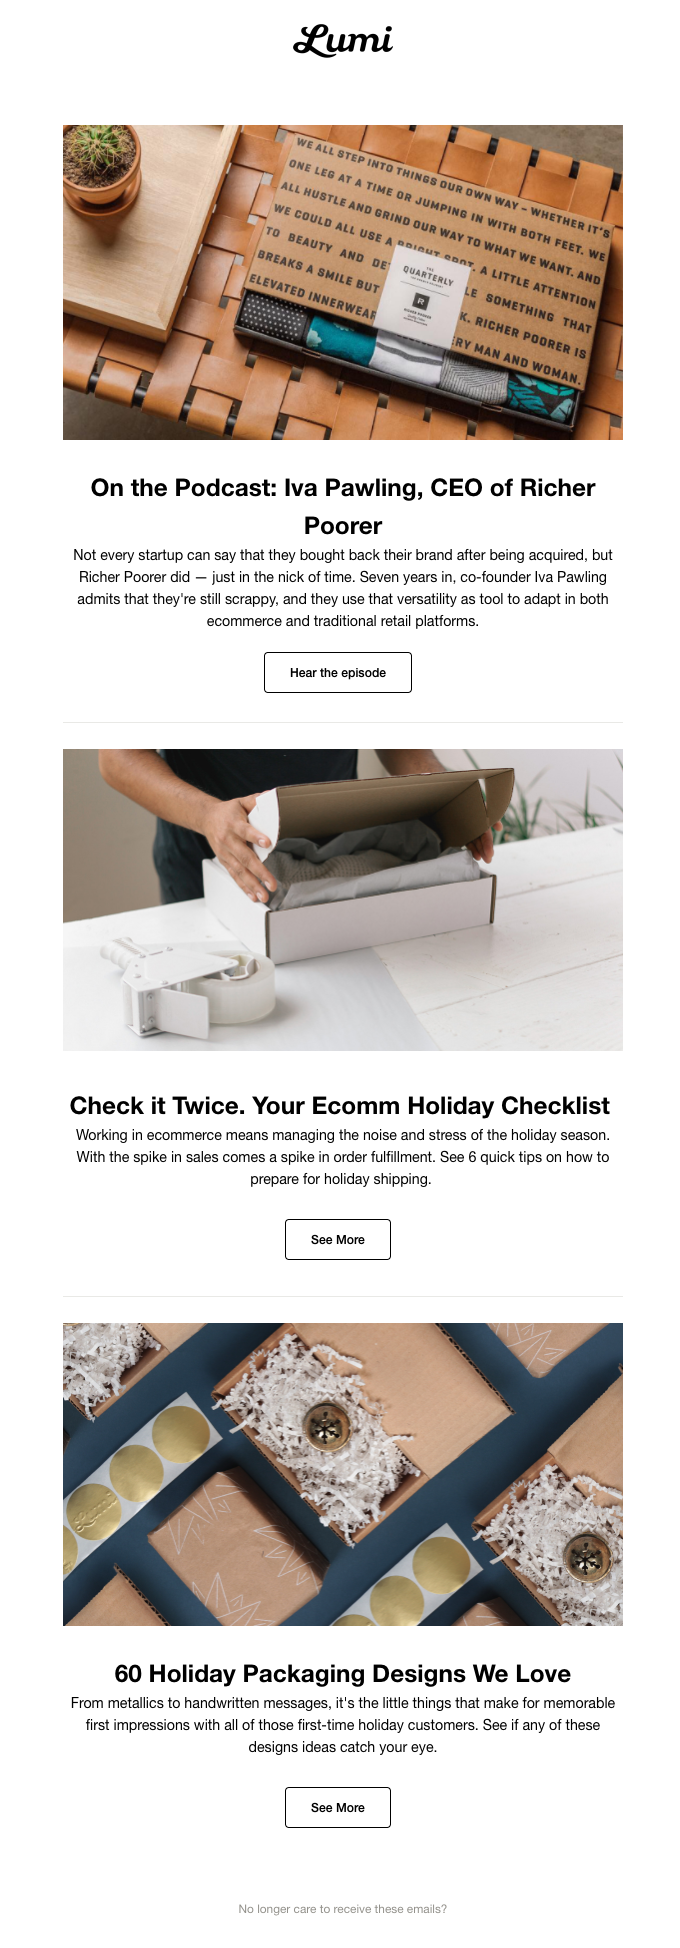 Your Ecomm Holiday Checklist + A New Episode of the Podcast!